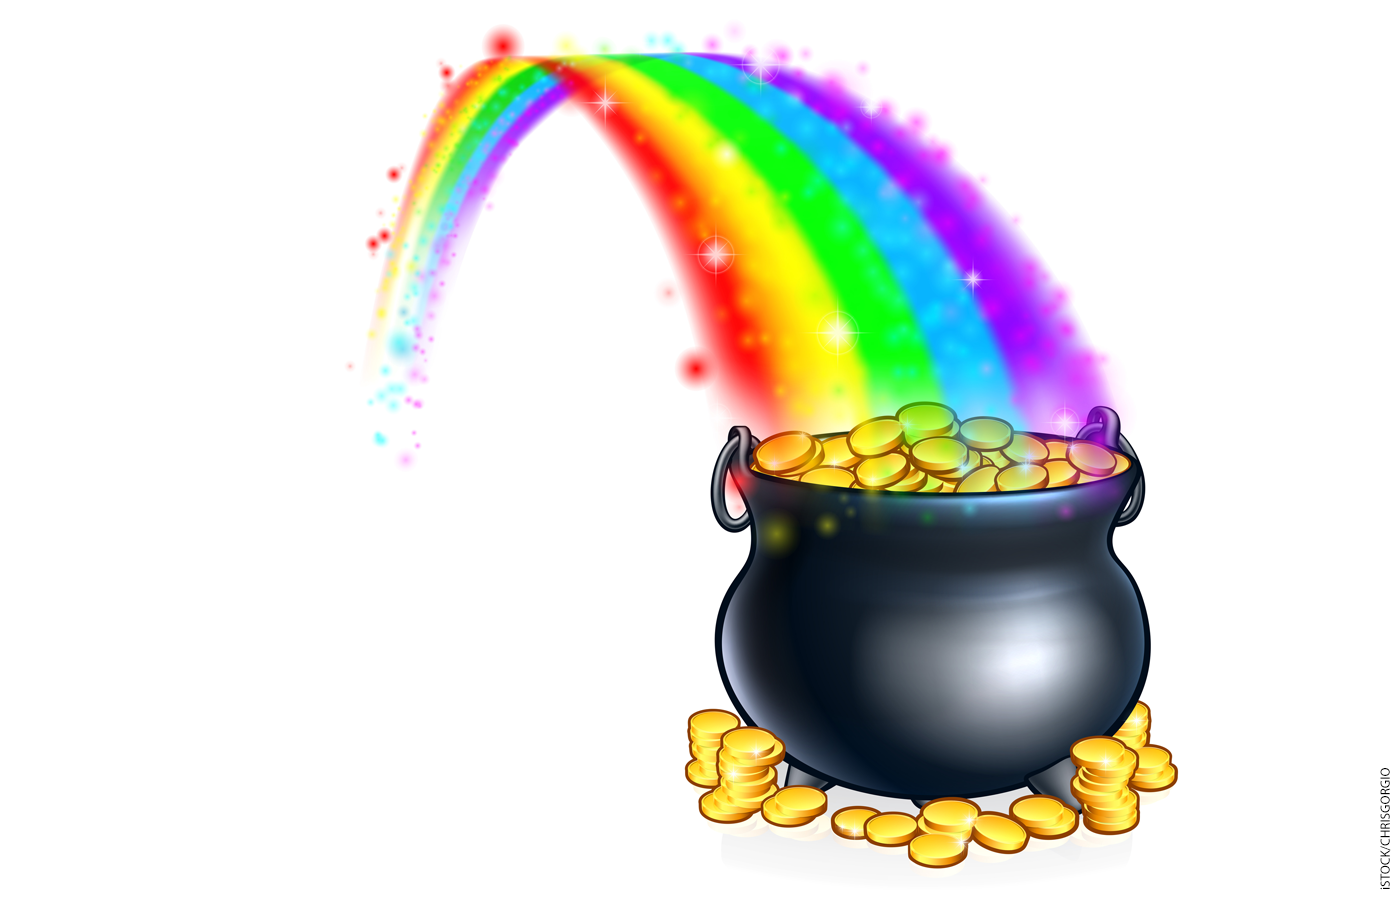 Illustration of a pot of gold at the end of a rainbow